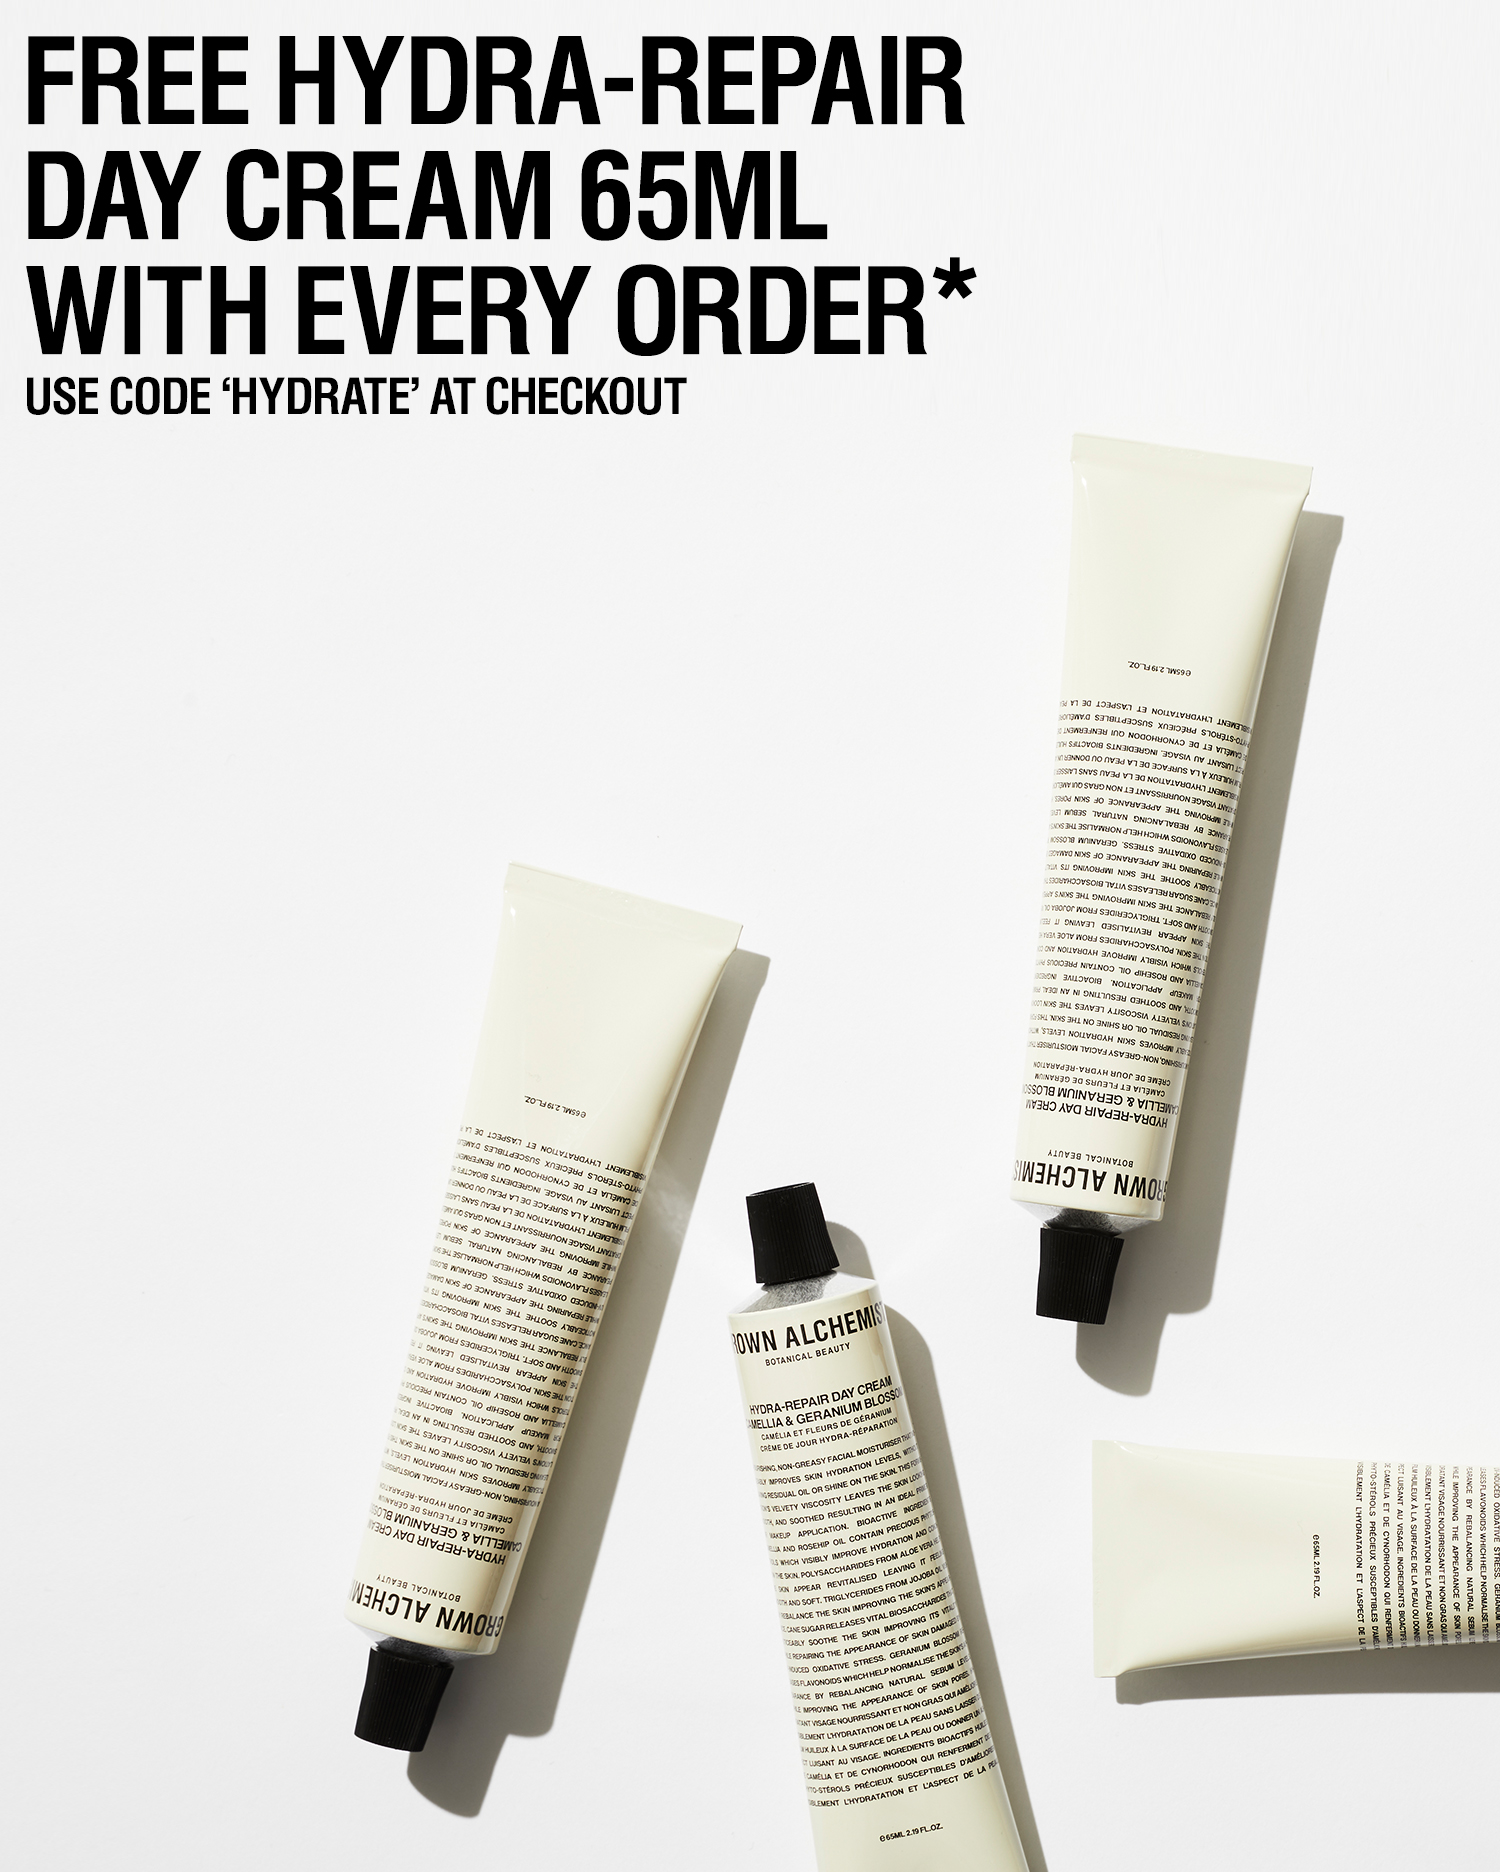 Free Hydra-Repair Day Cream with the code HYDRATE